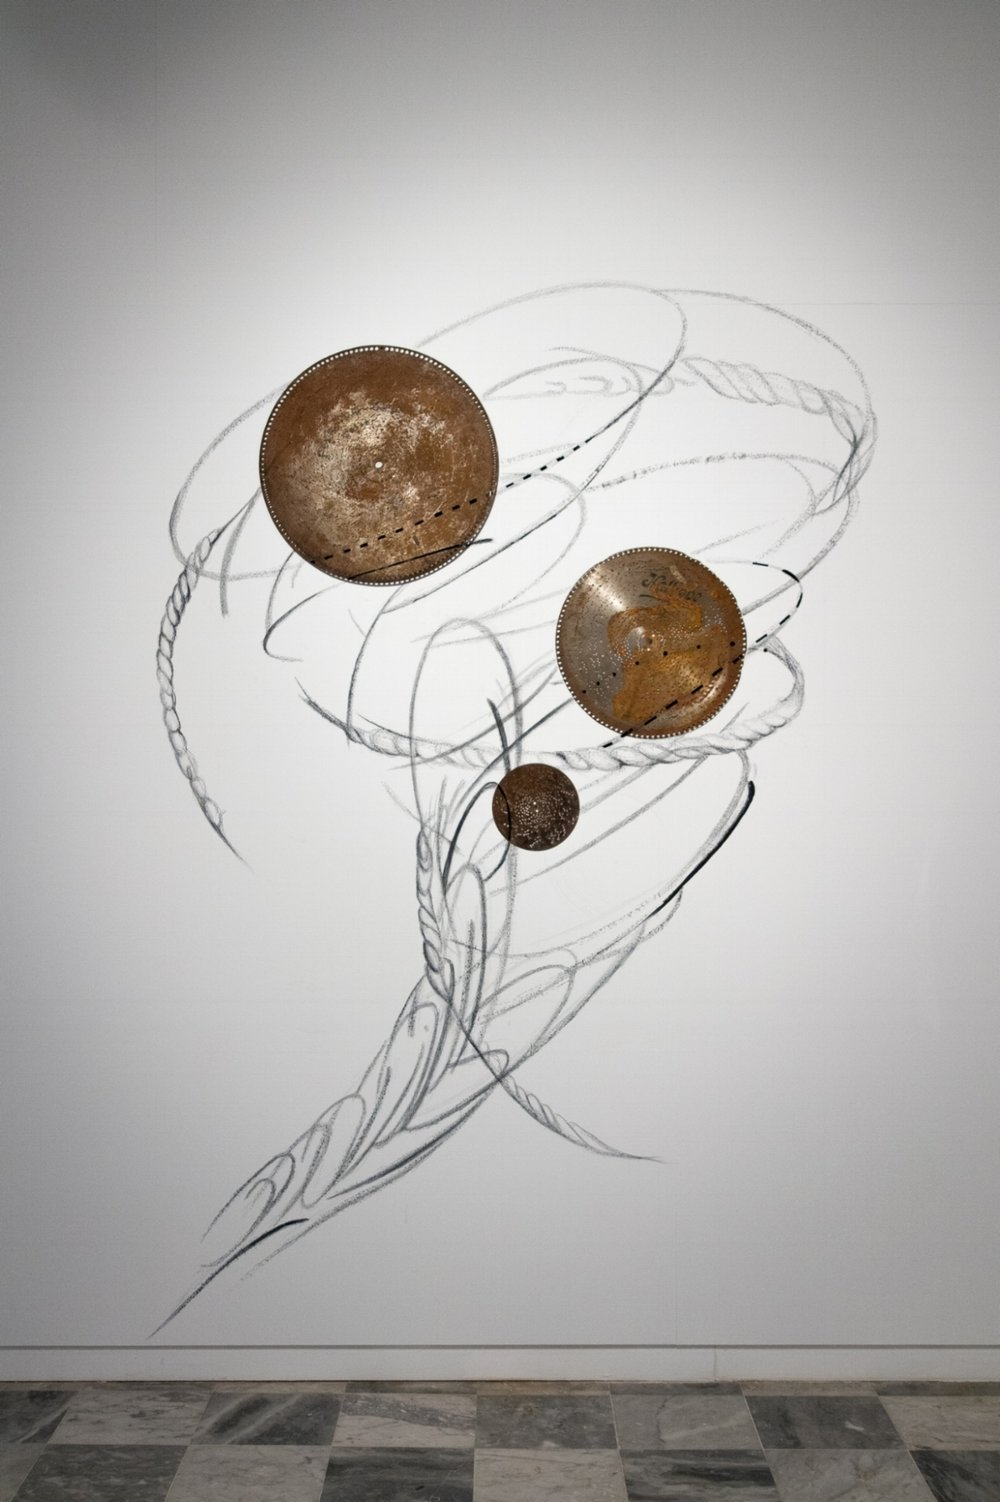 'Rabo de nube' (Waterspout)  Wall drawing. Graphite, tape, corroded symphonium discs.